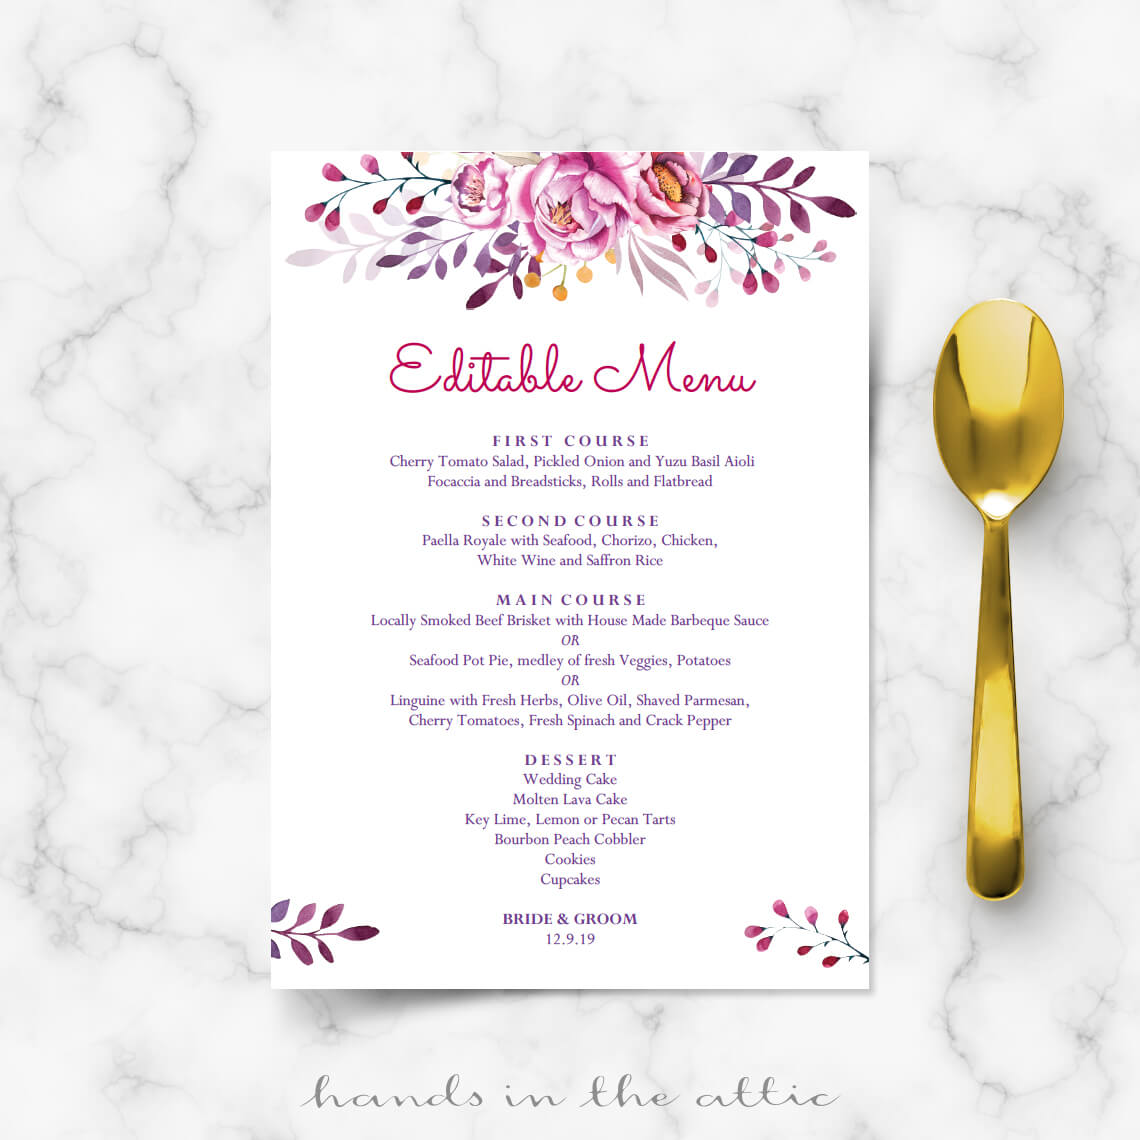 Pink Wedding Menu Printable Templates Hands In The Attic